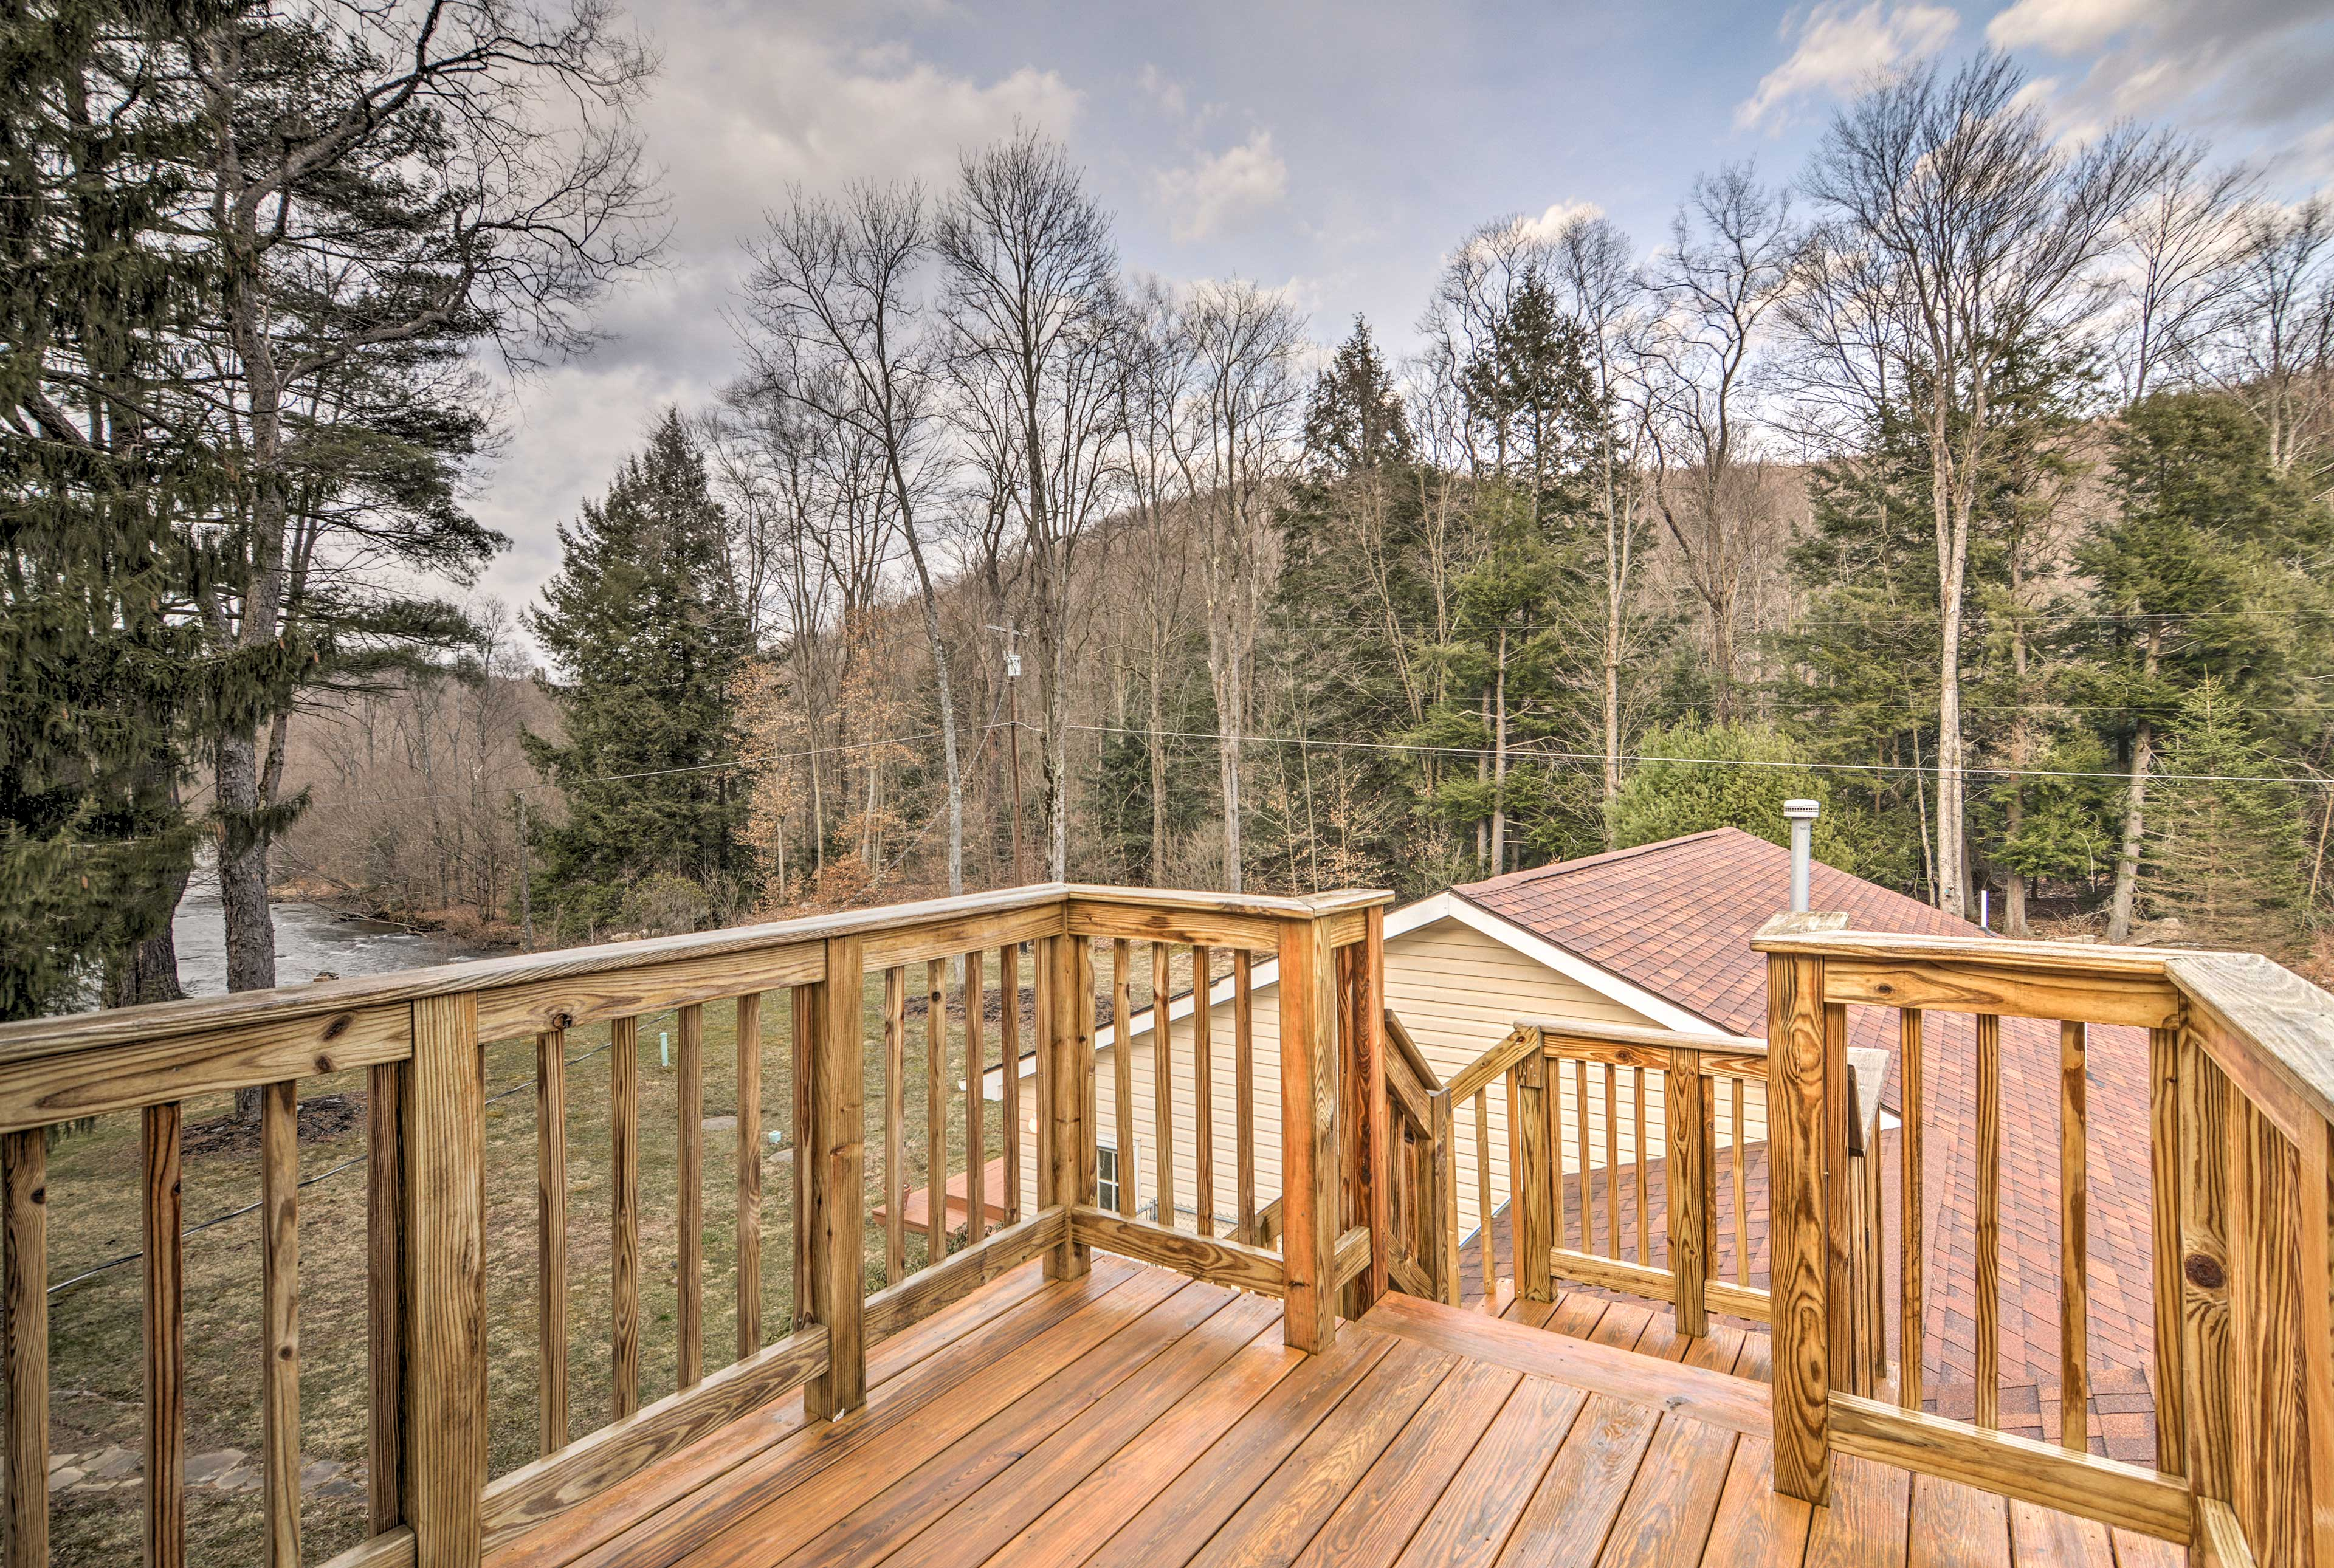 Step out onto the deck to get some fresh air!